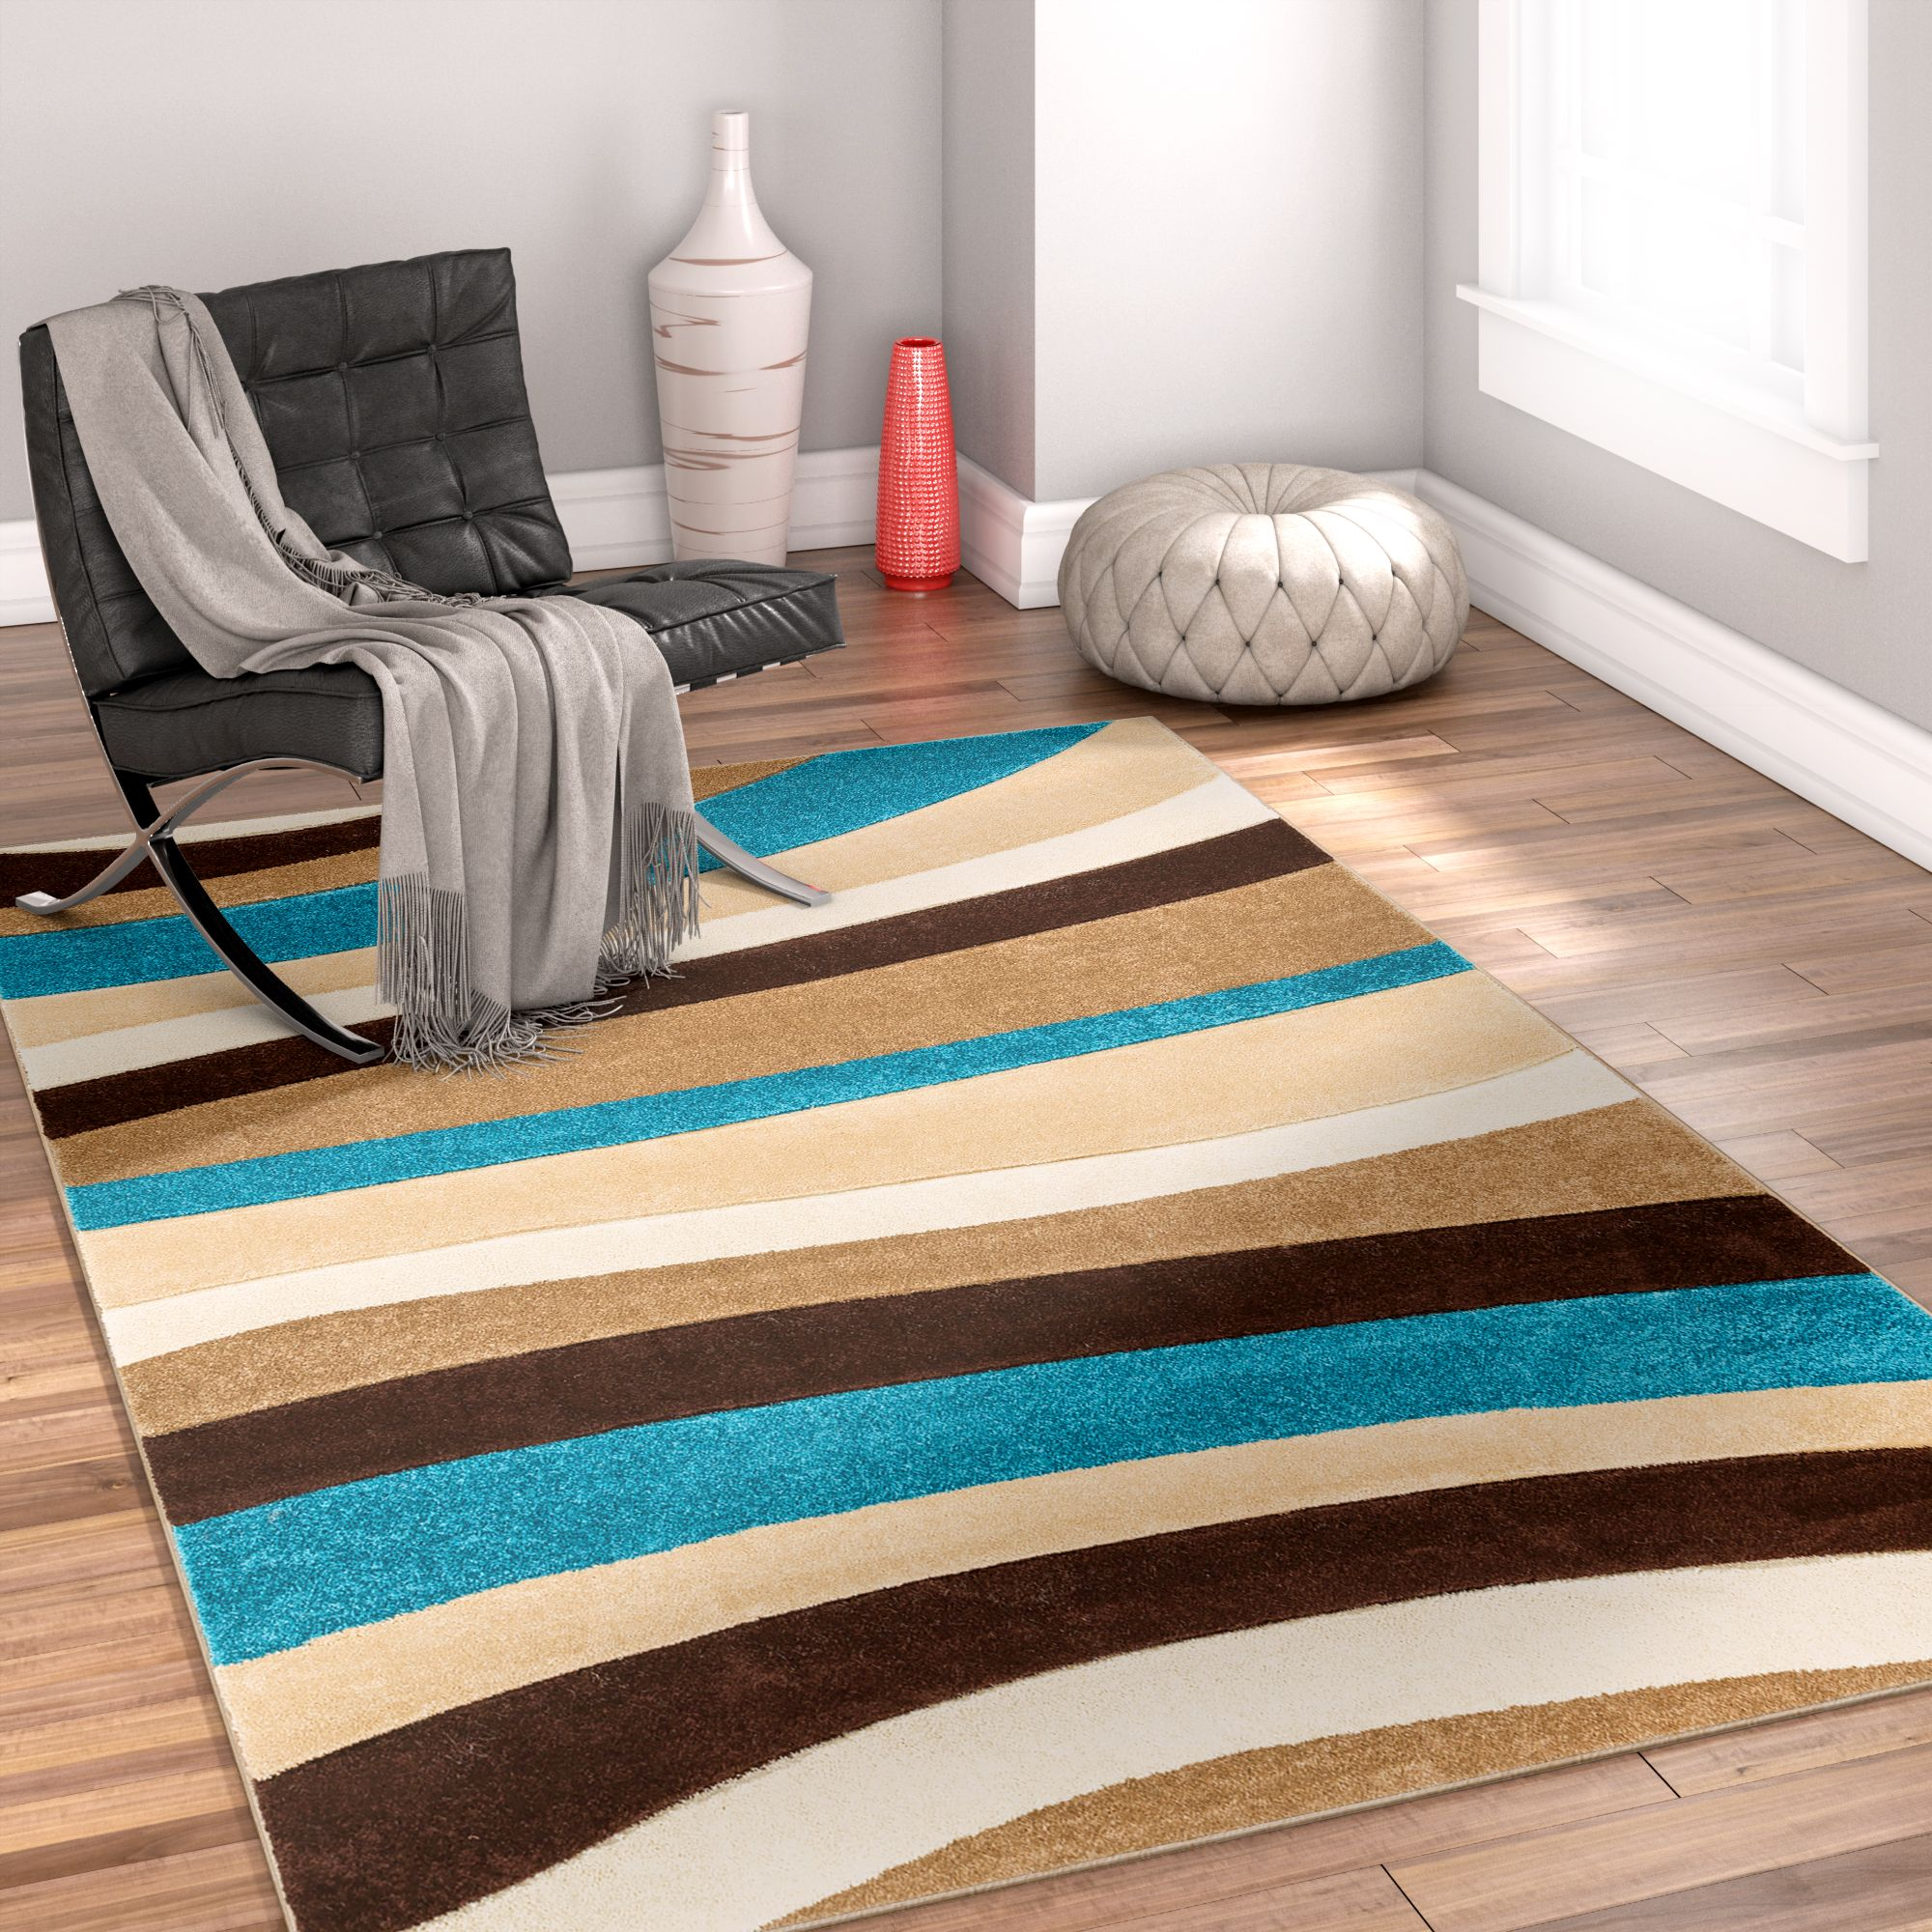 Well Woven Ruby Rad Waves Modern Blue Area Rug